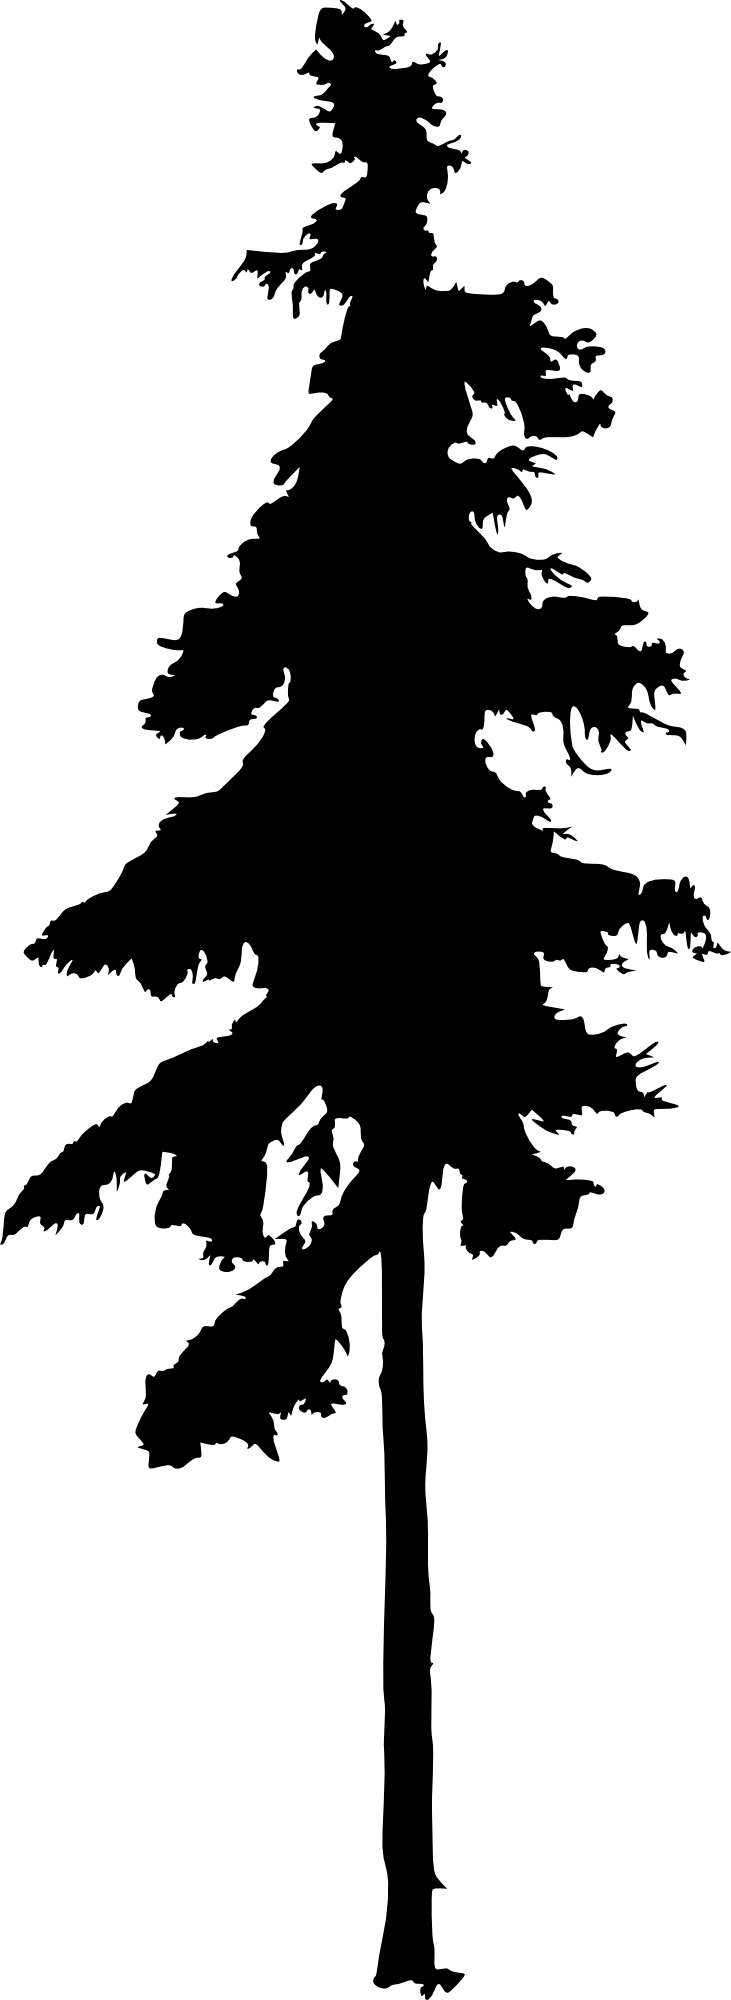 Cedar tree clipart black and white picture free Eastern White Pine Silhouette at GetDrawings.com | Free for personal ... picture free